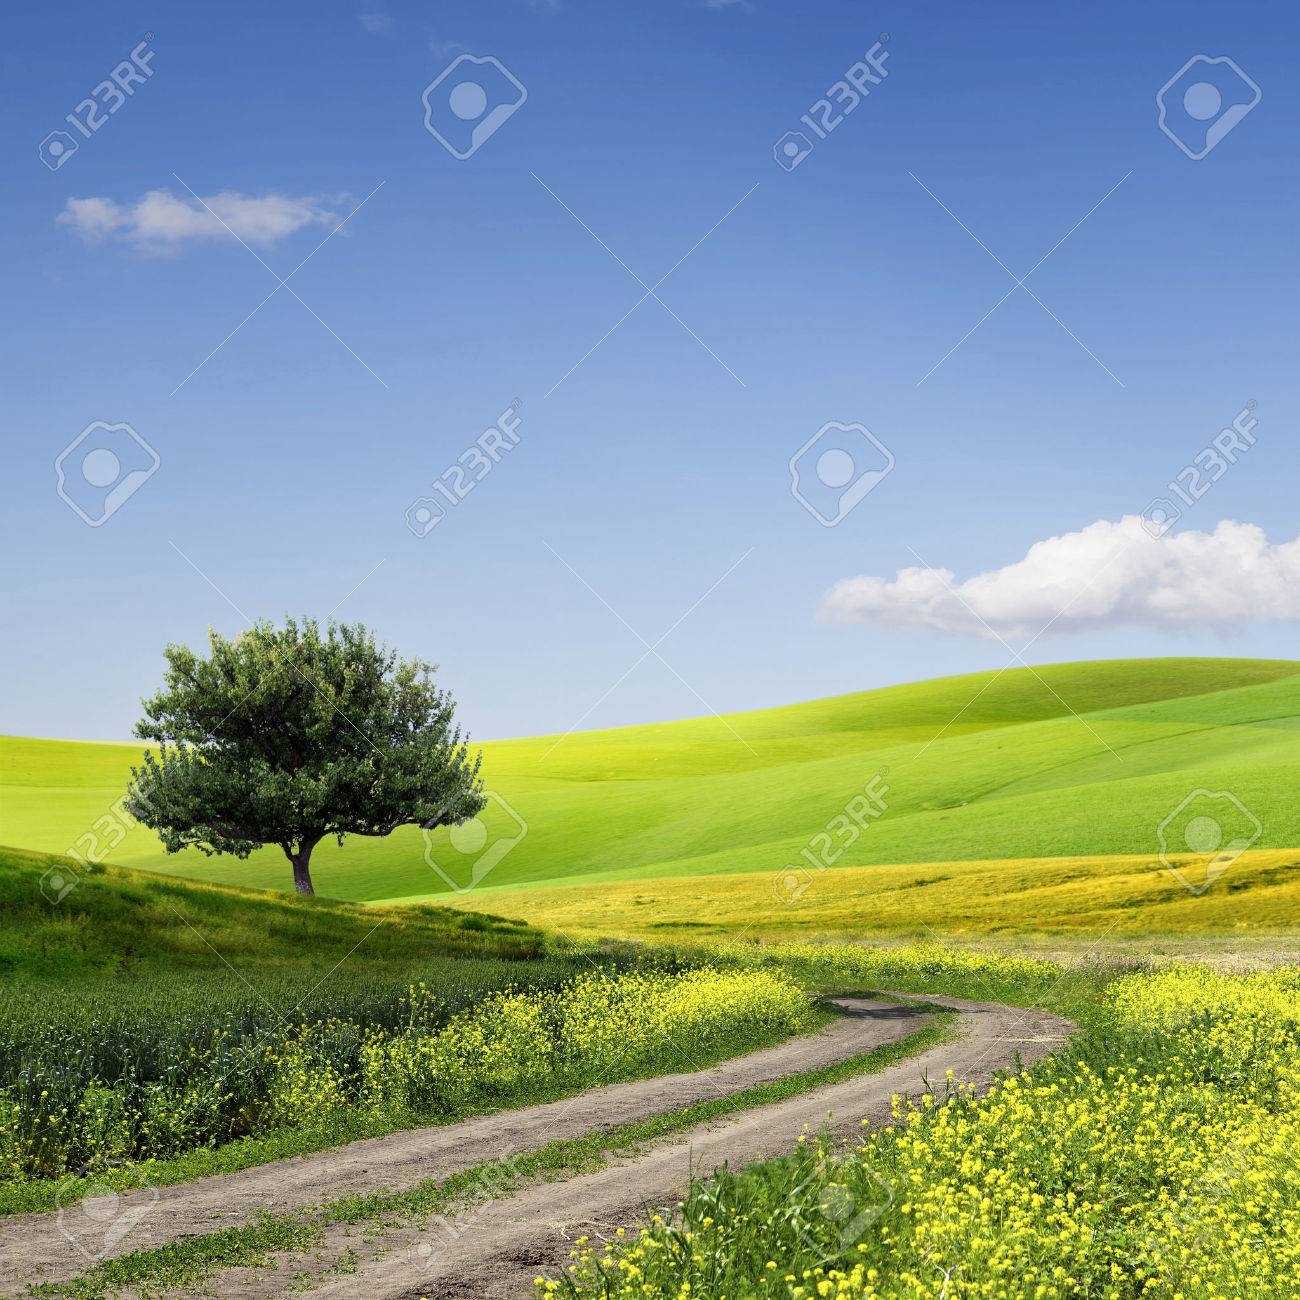 Green Grass Field Landscape with fantastic clouds in the background - 53768739